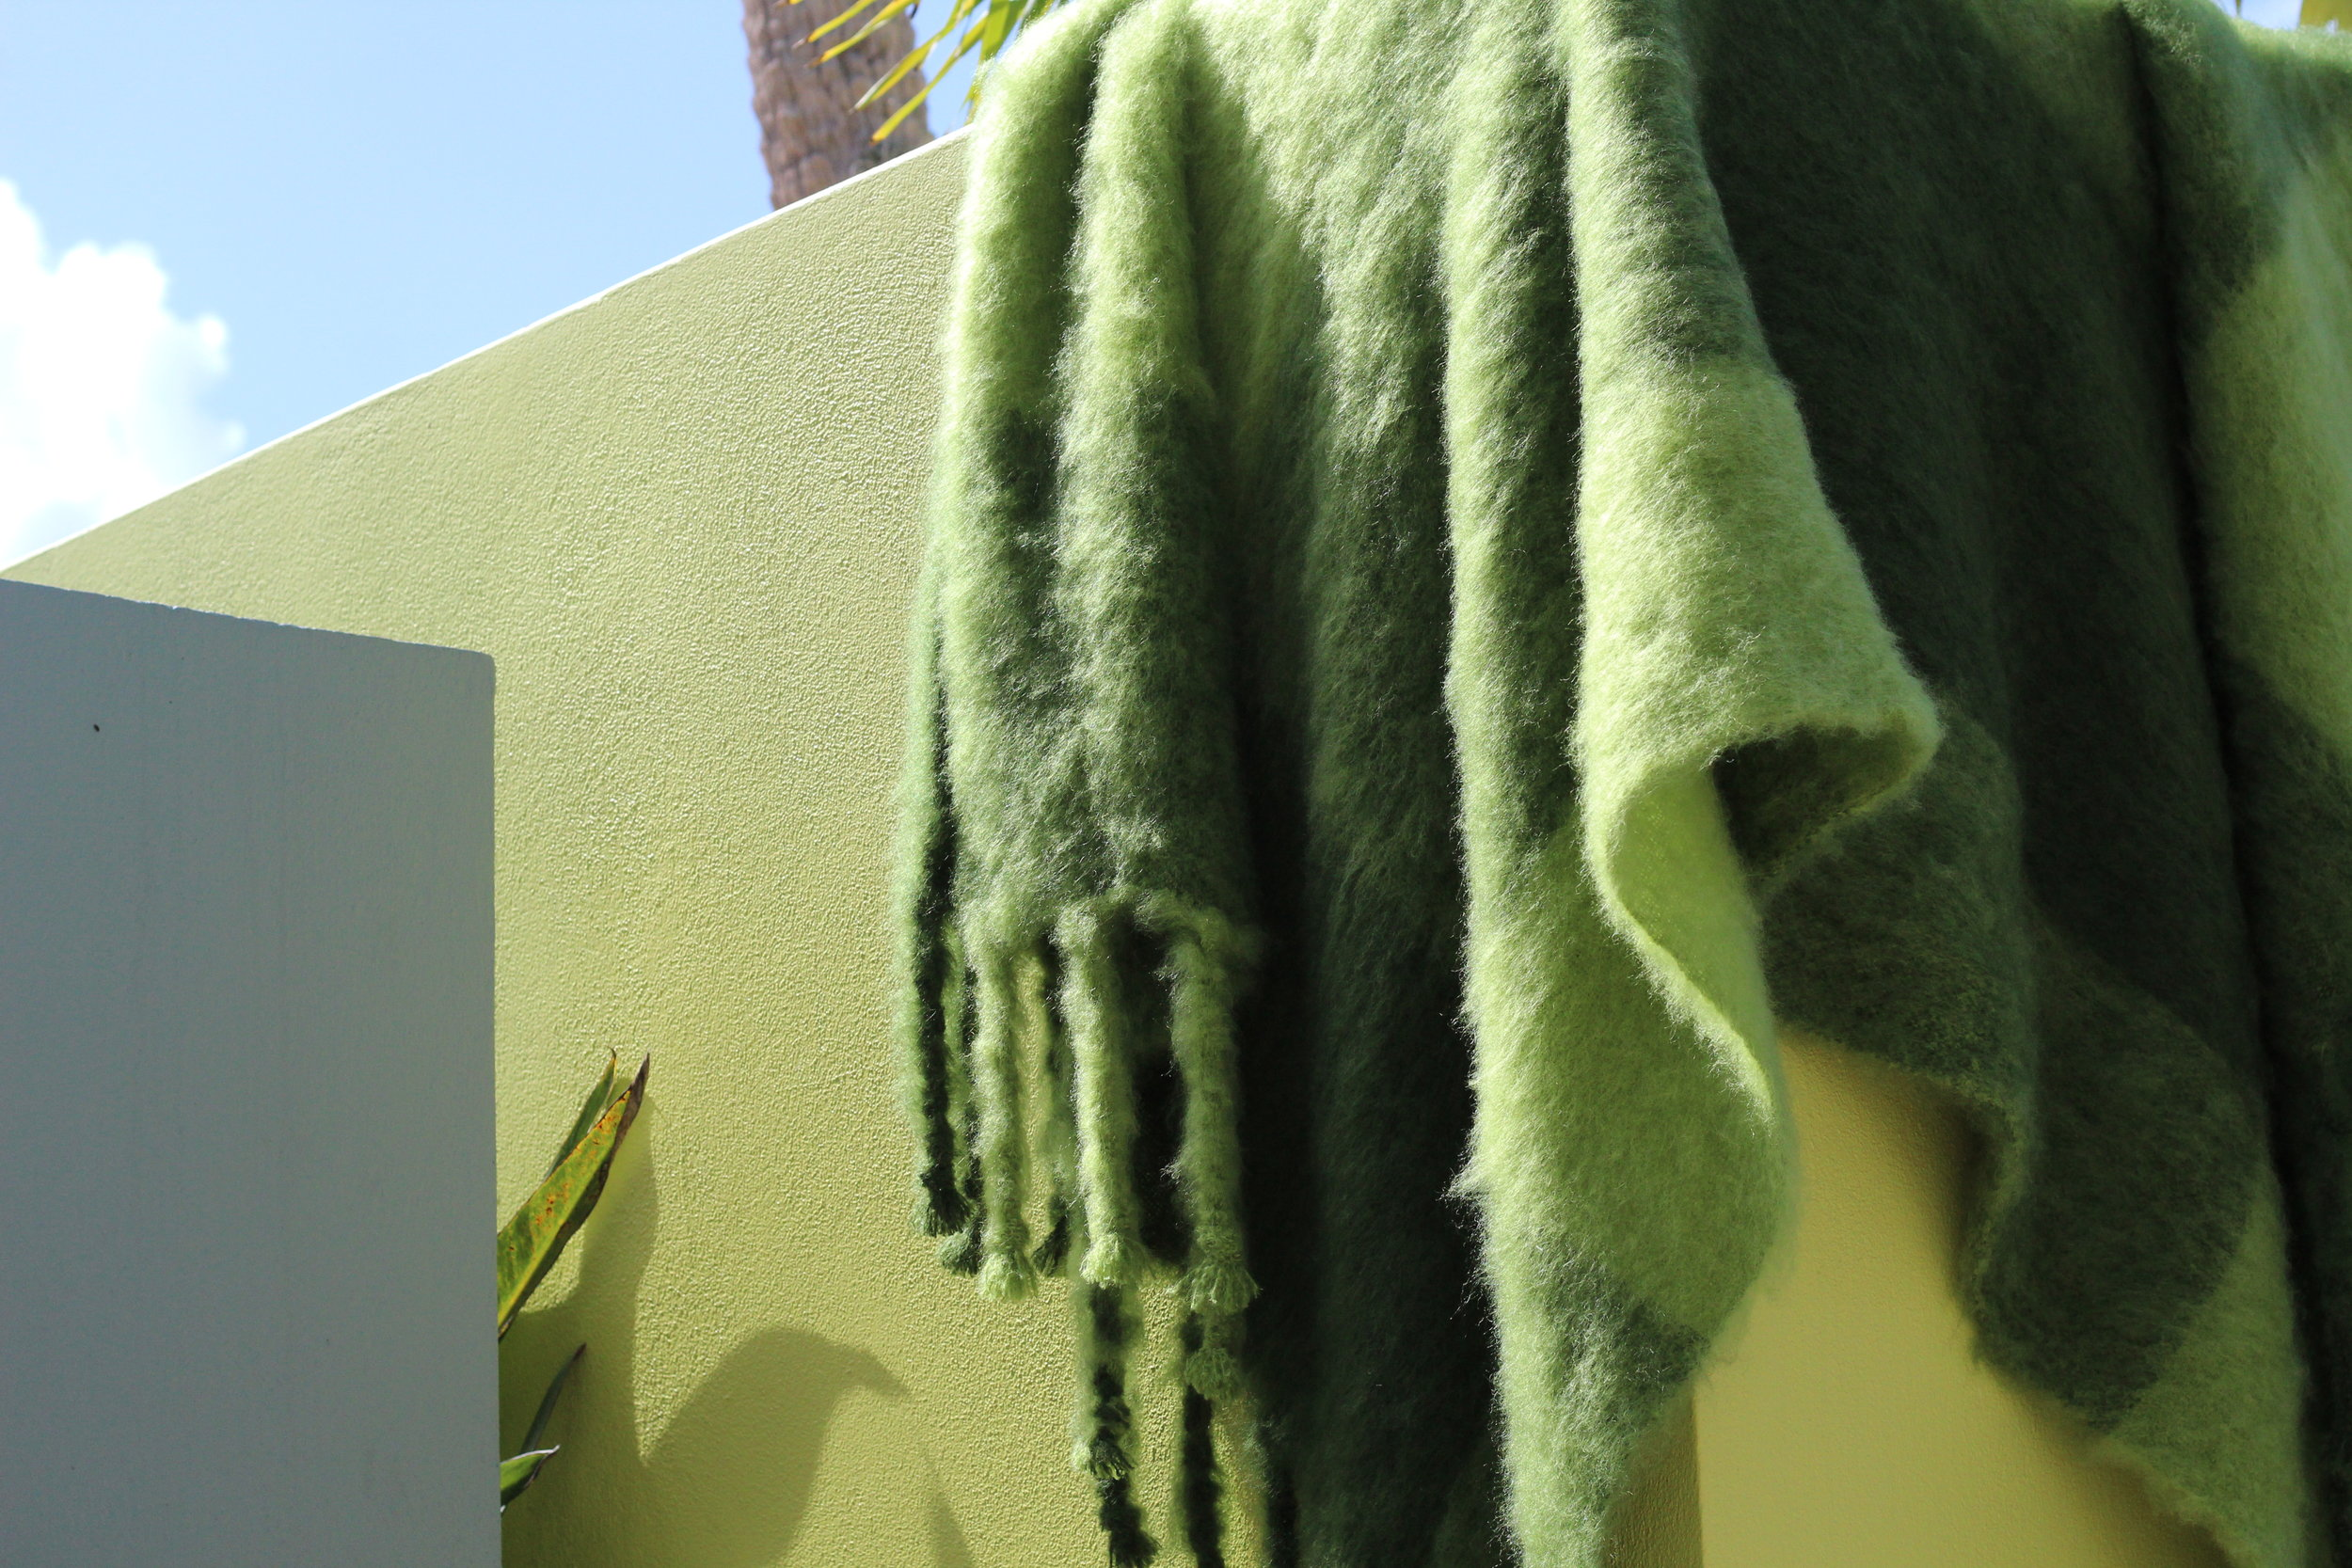 PB Private Label Mohair Blankets   All mohair blankets are handmade in Finland and brushed with natural thistles. Both durable and resilient, mohair is notable for its high luster and ability to take dyes exceptionally well. Pansy Bayou is proud to present luxurious and colorful handmade mohair blankets designed by a family of artisans with decades of experience in the textile industry.